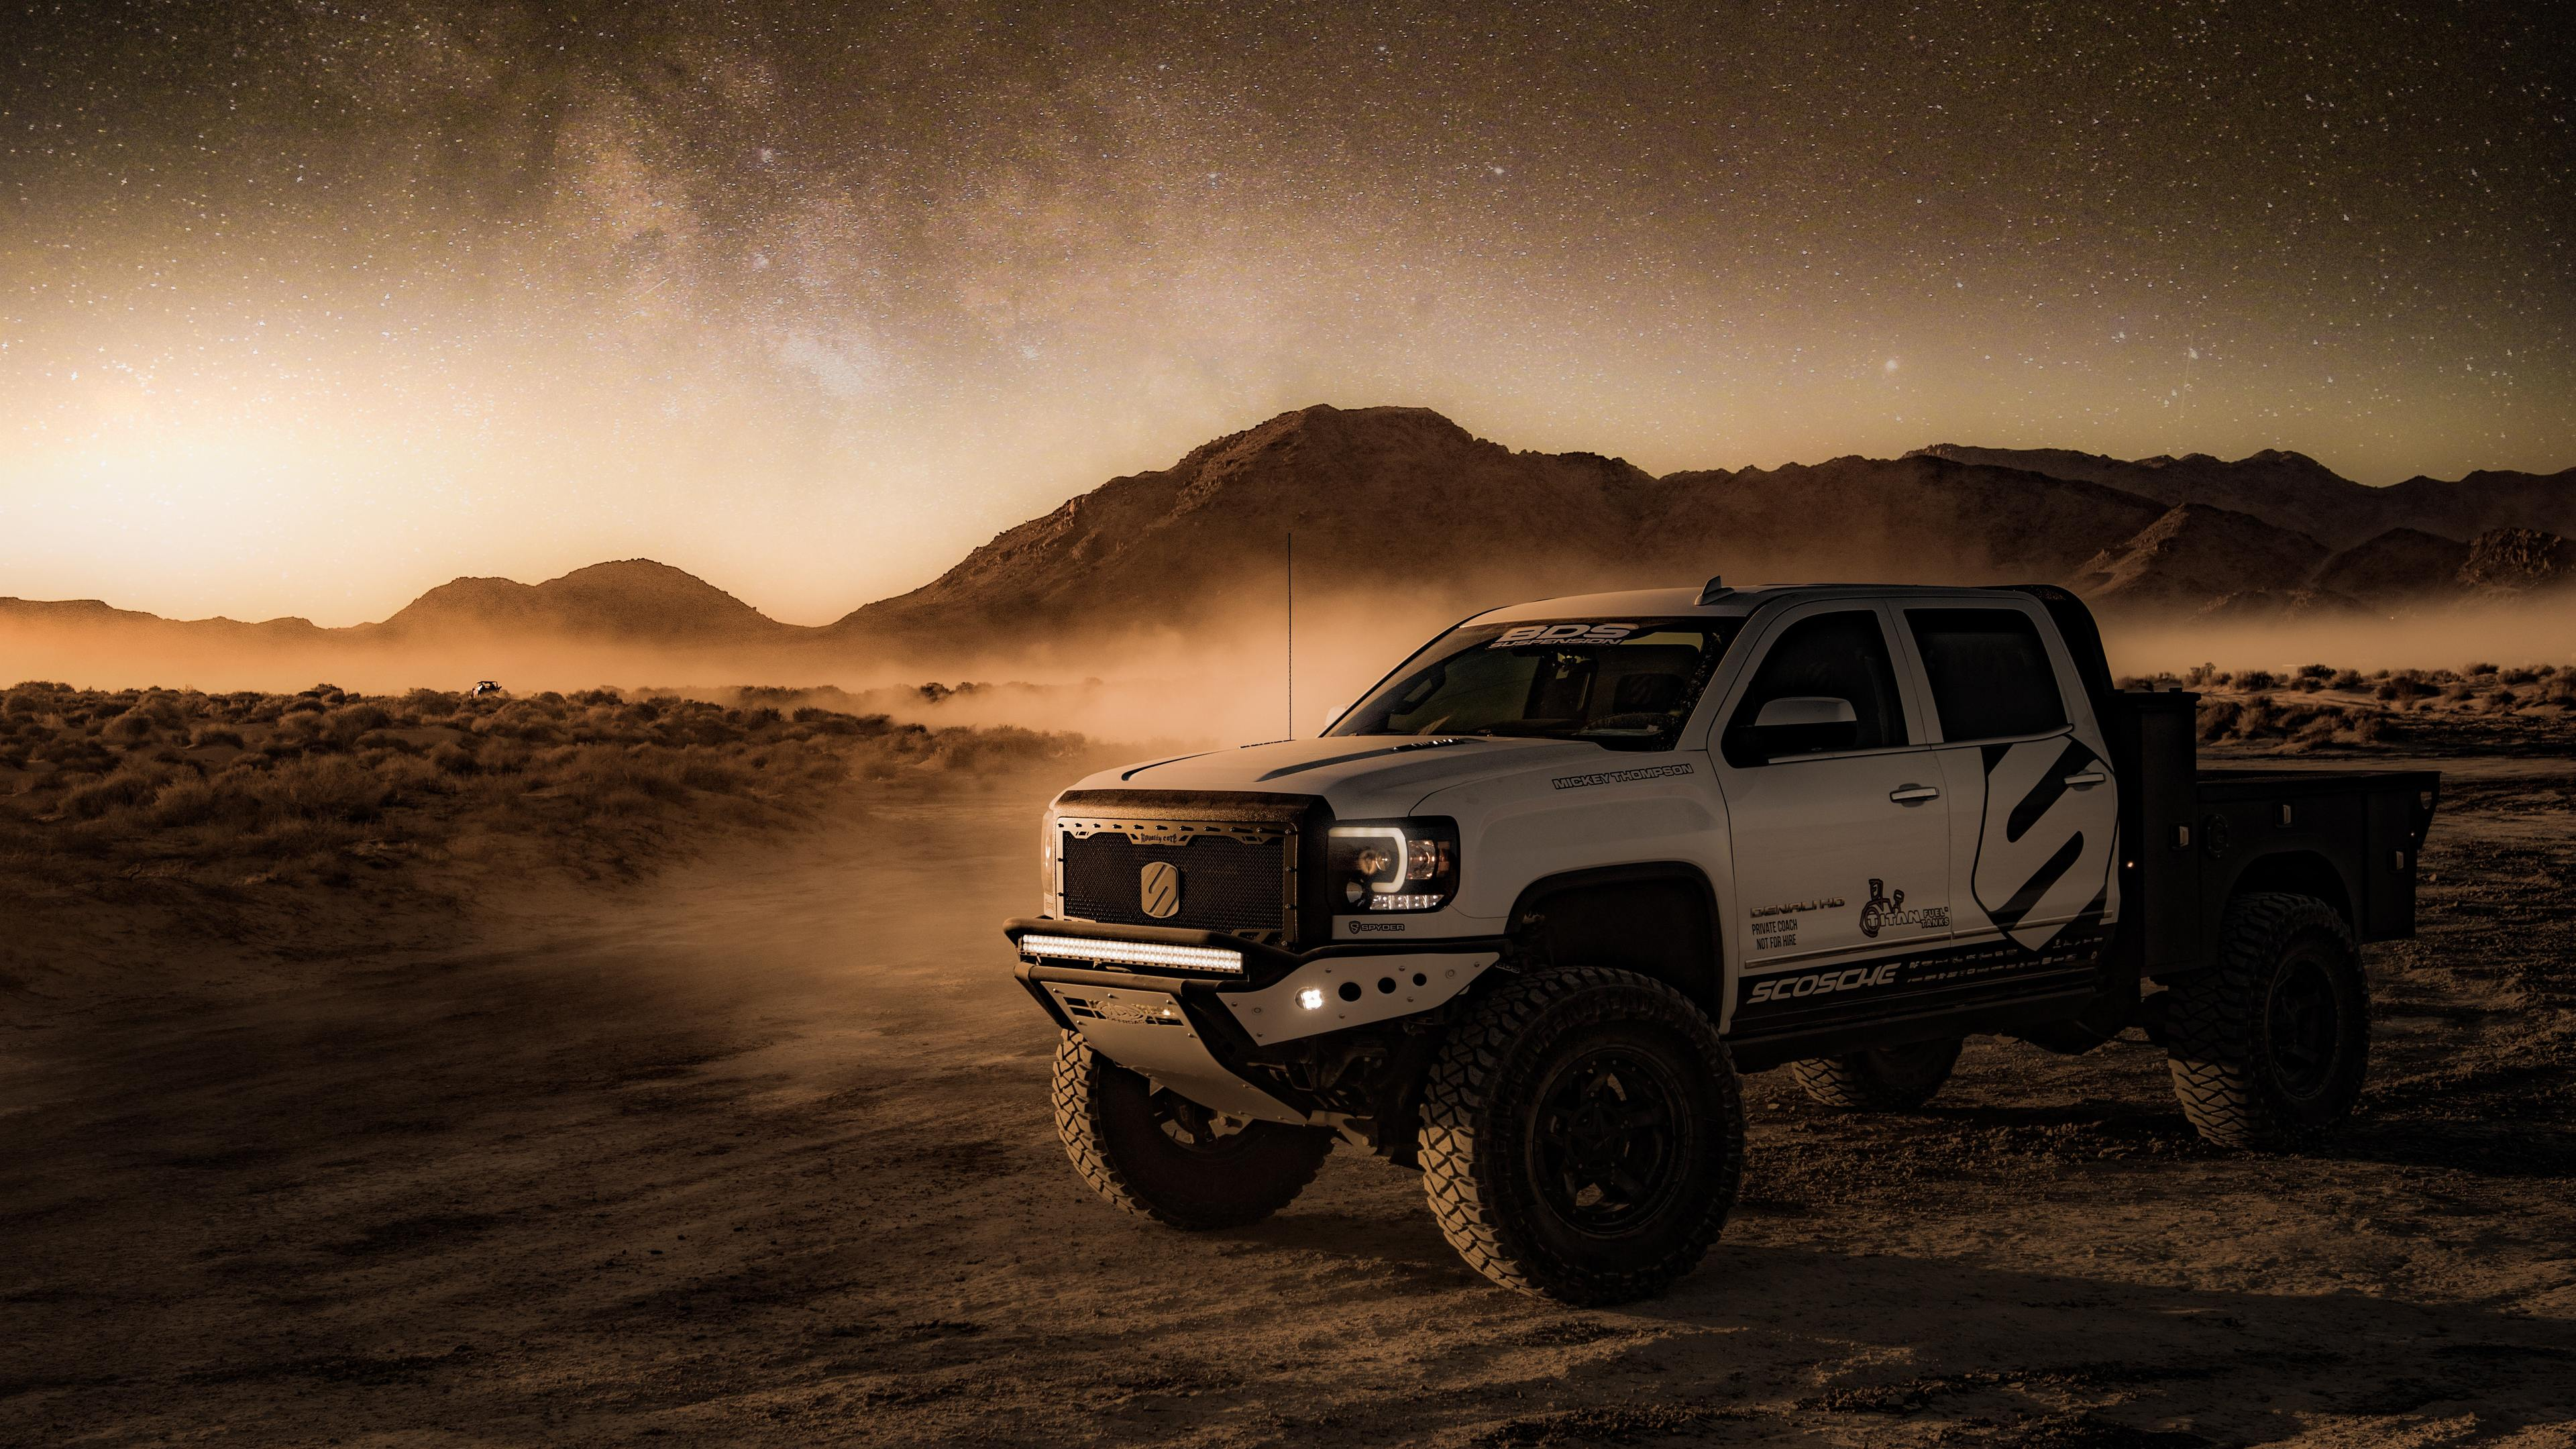 4x4 offroad vehicle in desert 1539111846 - 4x4 Offroad Vehicle In Desert - offroading wallpapers, hd-wallpapers, desert wallpapers, cars wallpapers, 5k wallpapers, 4k-wallpapers